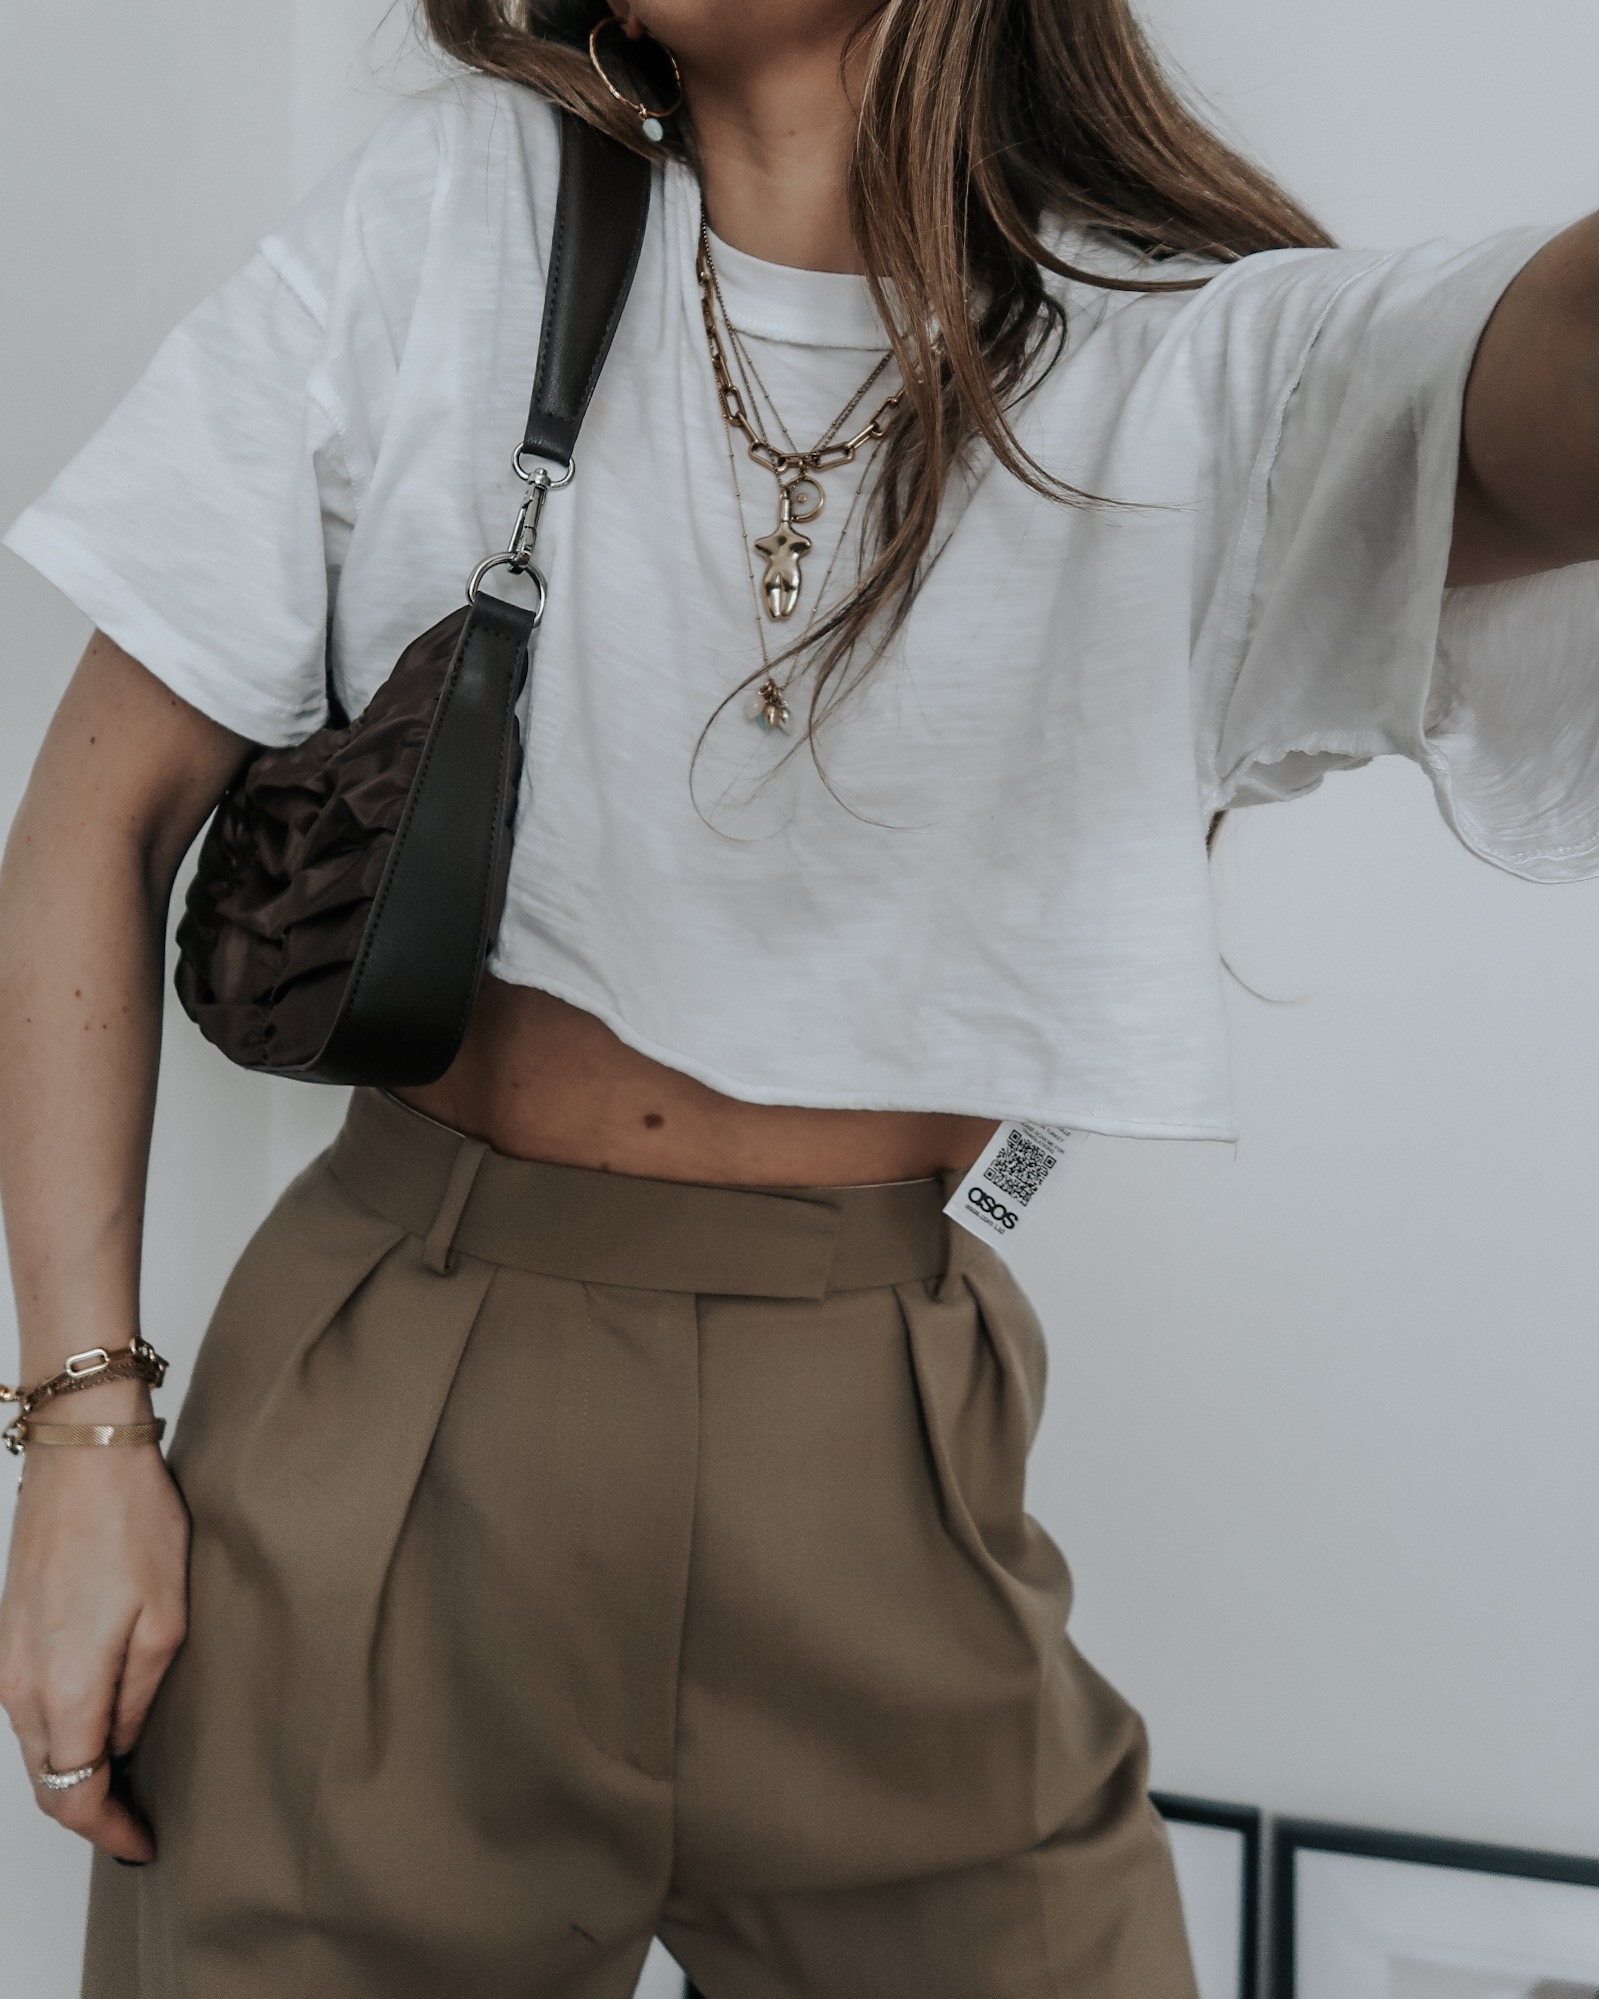 Outfit Ideas for Trousers - Spring 2020 Lookbook